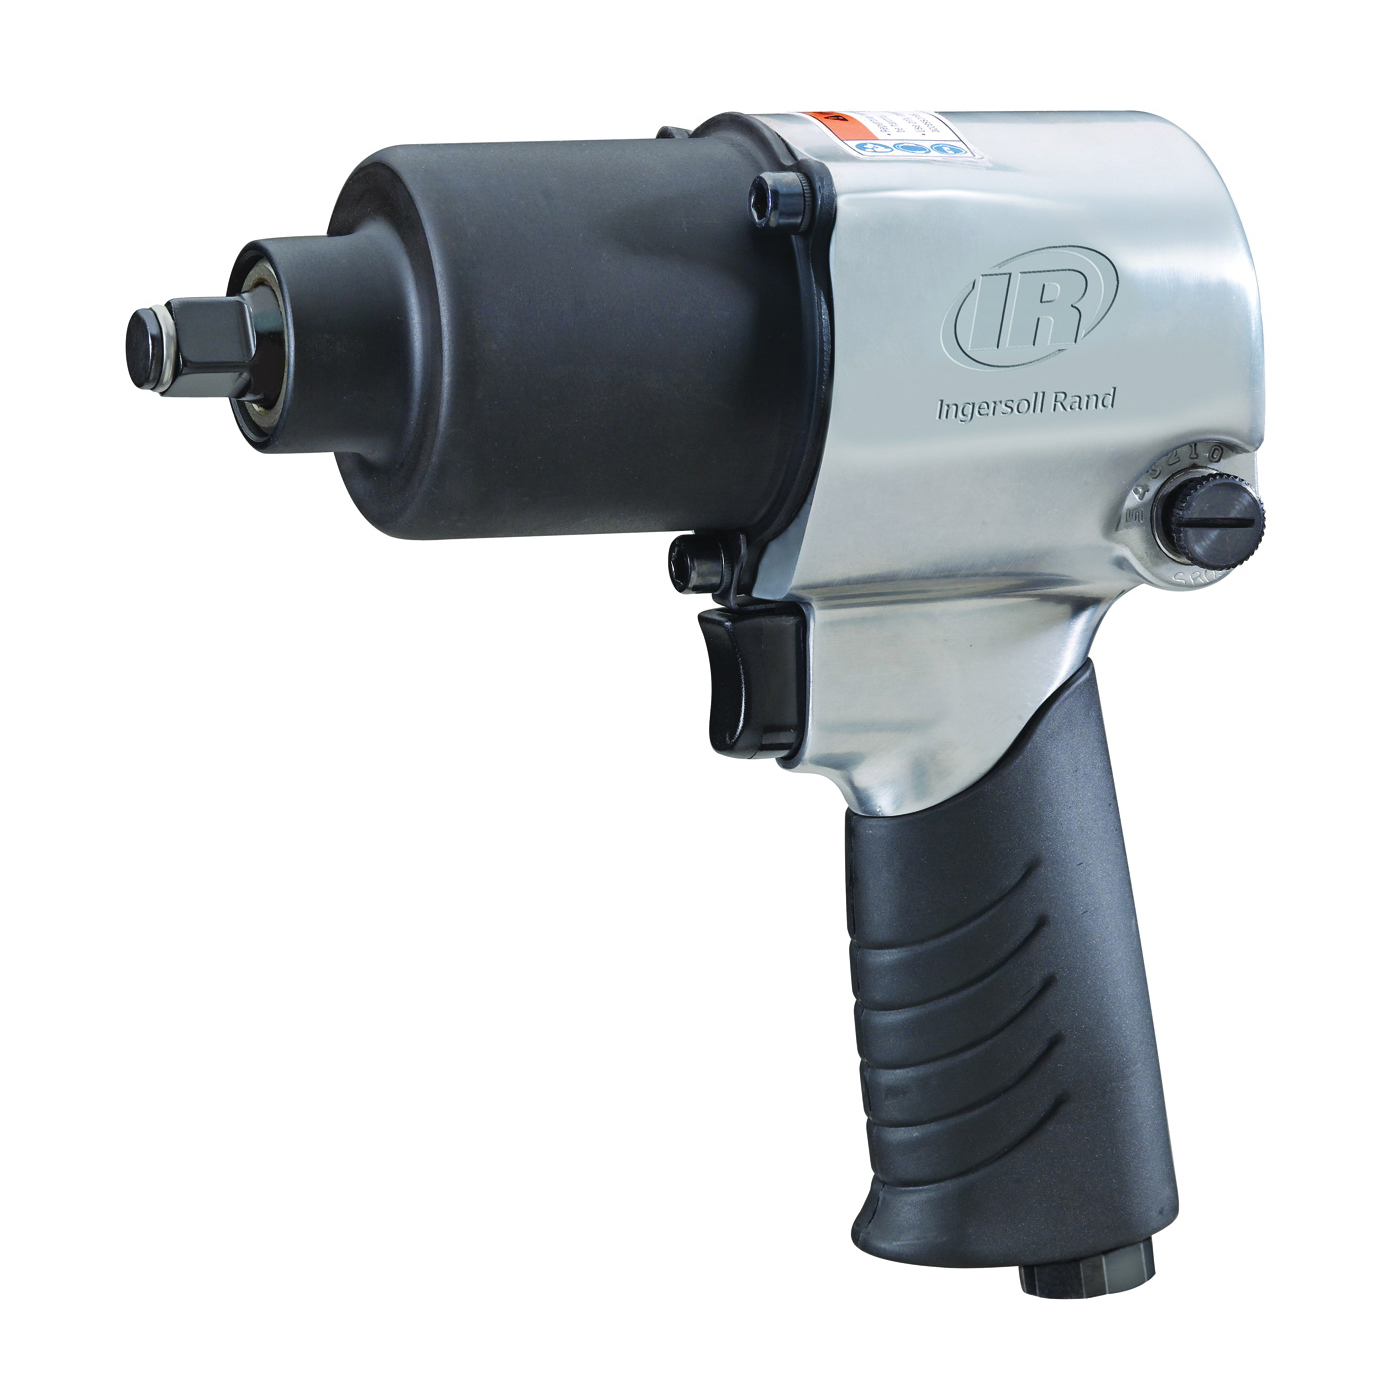 Picture of Ingersoll Rand 231G Air Impact Wrench, 1/2 in Drive, 500 ft-lb, 8000 rpm Speed